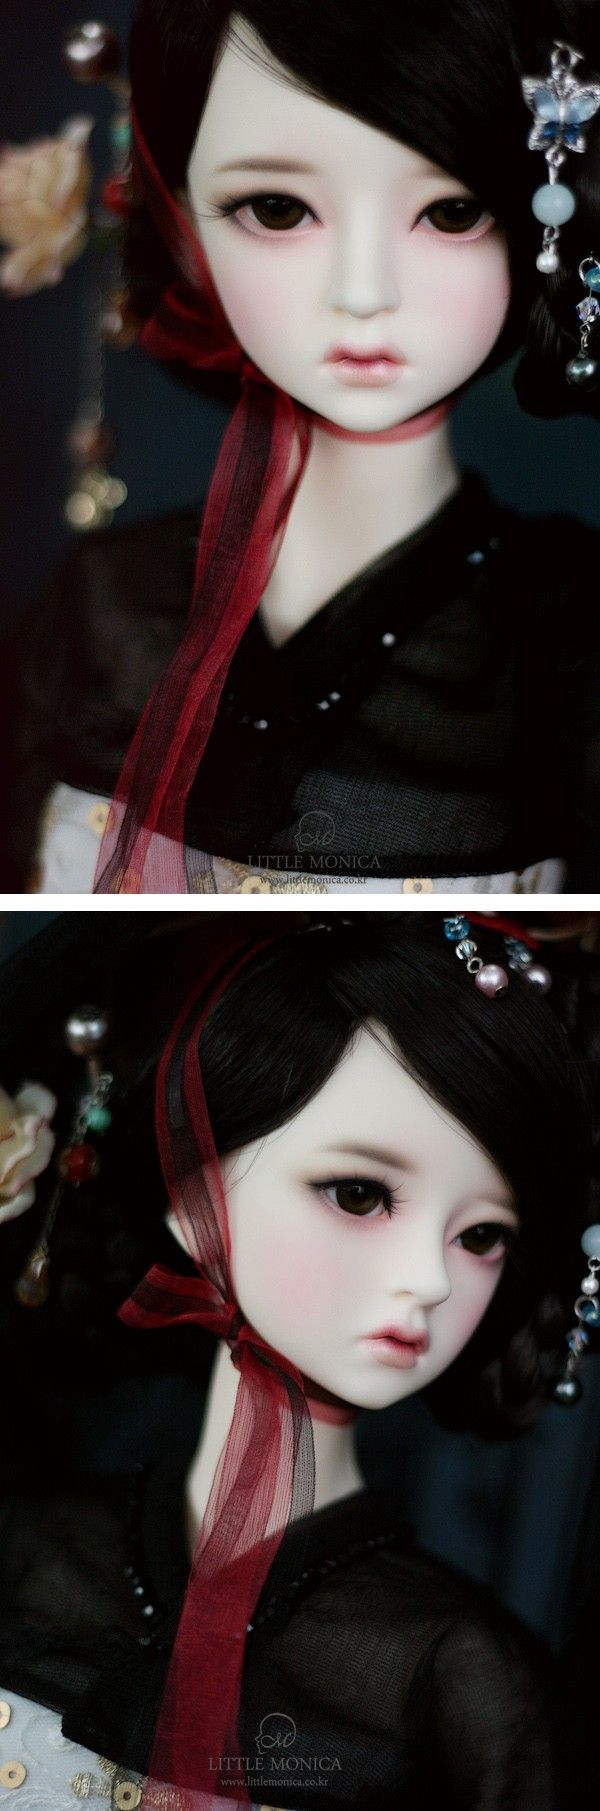 Ryuhwa - Little Monica 57cm Girl - BJD Dolls, Accessories - Alice's Collections